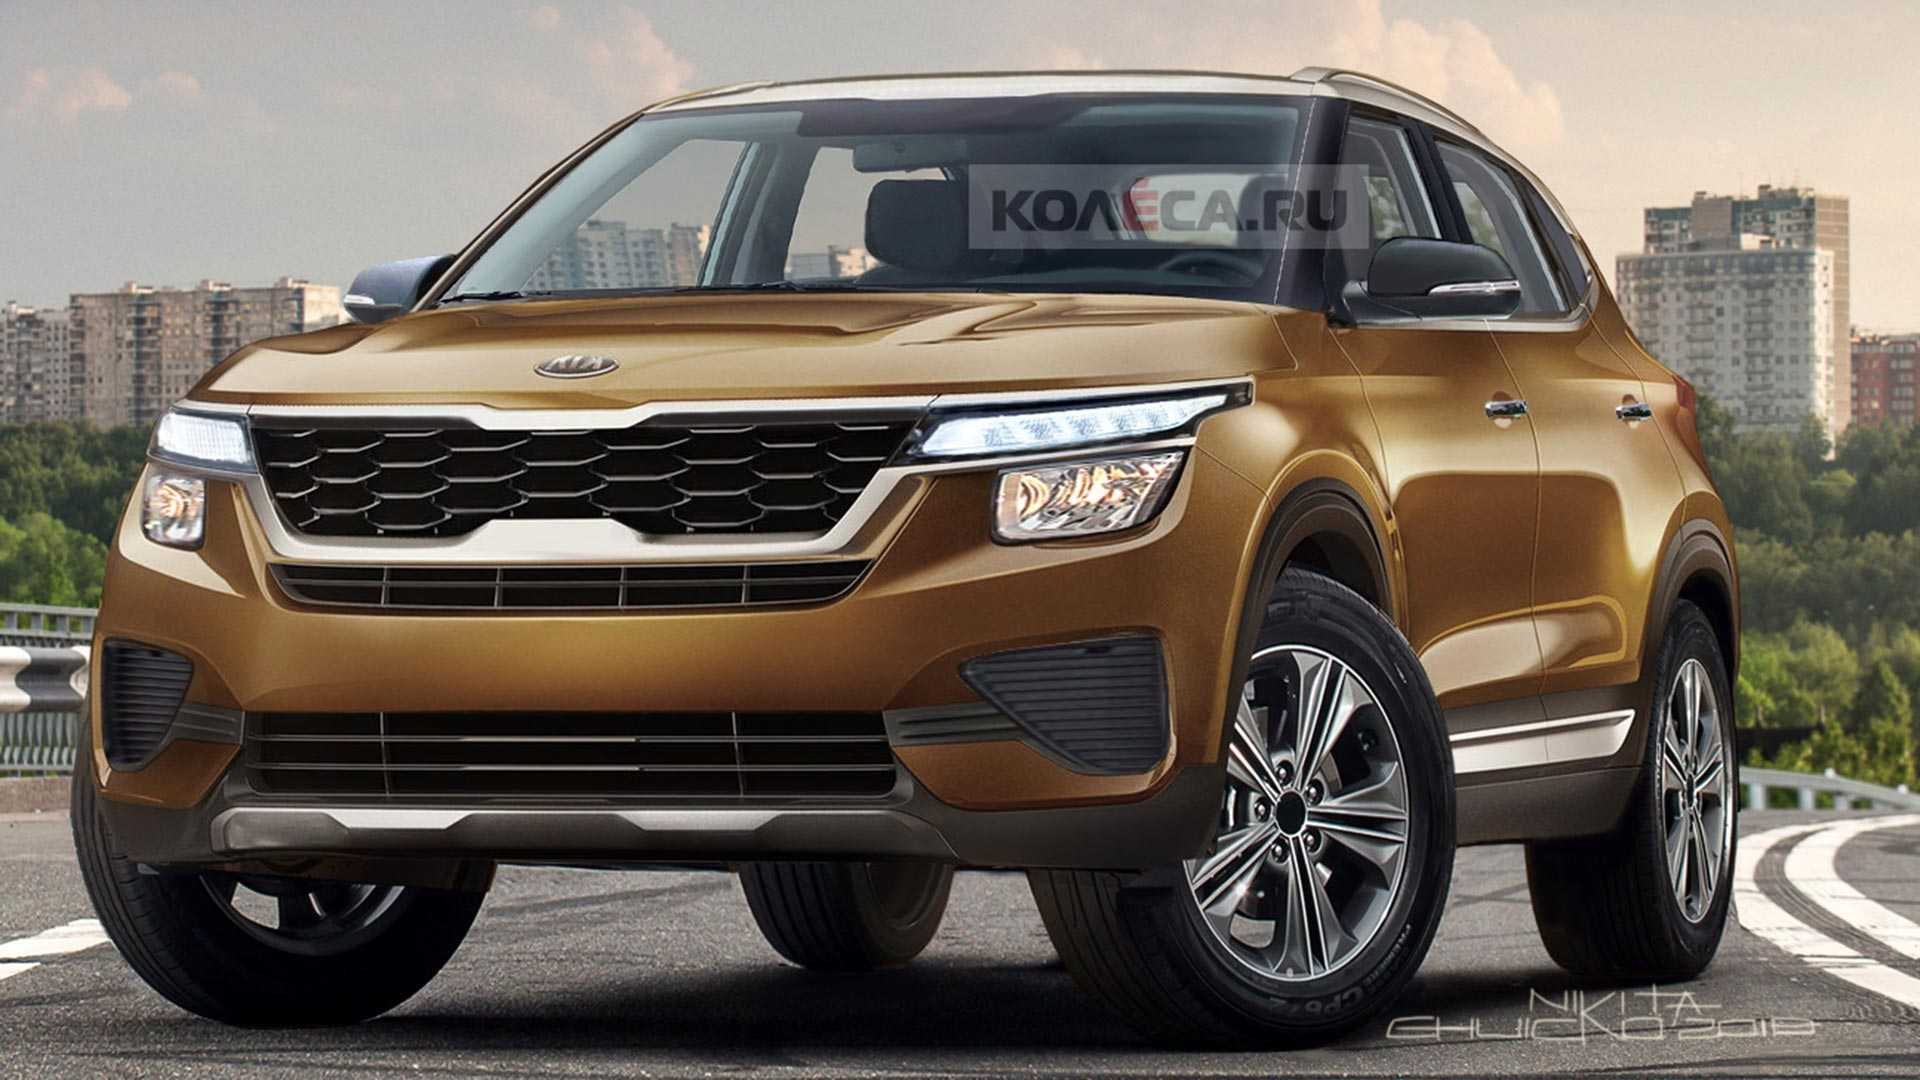 New Kia Small Crossover Rendered Ahead Of 2019 Reveal